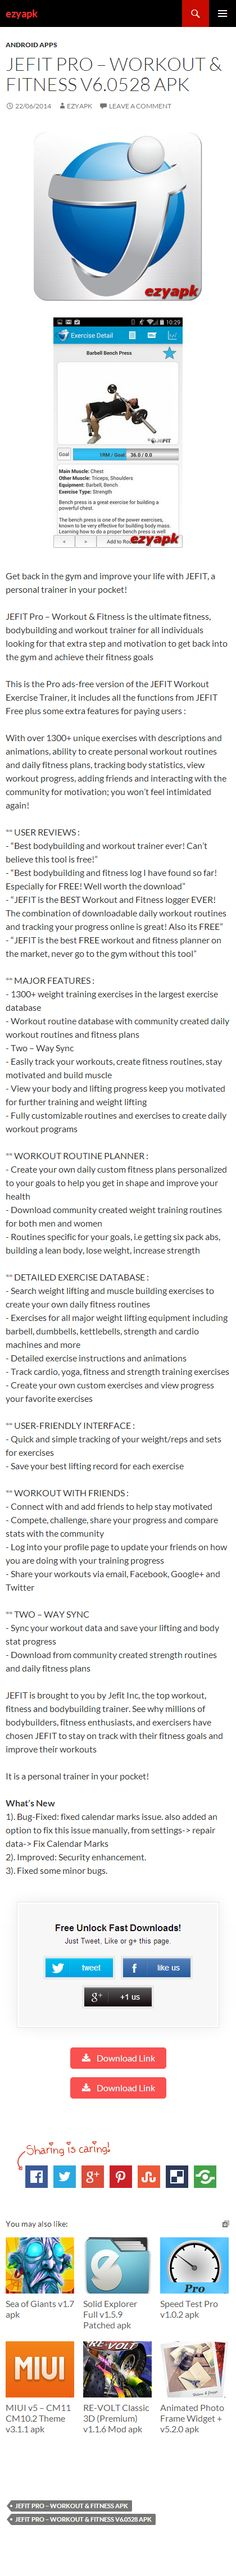 Android Apps JEFIT Pro – Workout  Fitness v6.0528 apk - ezyapk JEFIT Pro – Workout  Fitness is the ultimate fitness, bodybuilding and workout trainer for all individuals looking for that extra step and motivation. http://www.ezyapk.com/android-apps/jefit-pro-workout-fitness-v6-0528-apk/ http://u.ezyapk.com/8WELP #app #apps #androidapp #ezyapk #androidapps #fitness #health #workout #gym